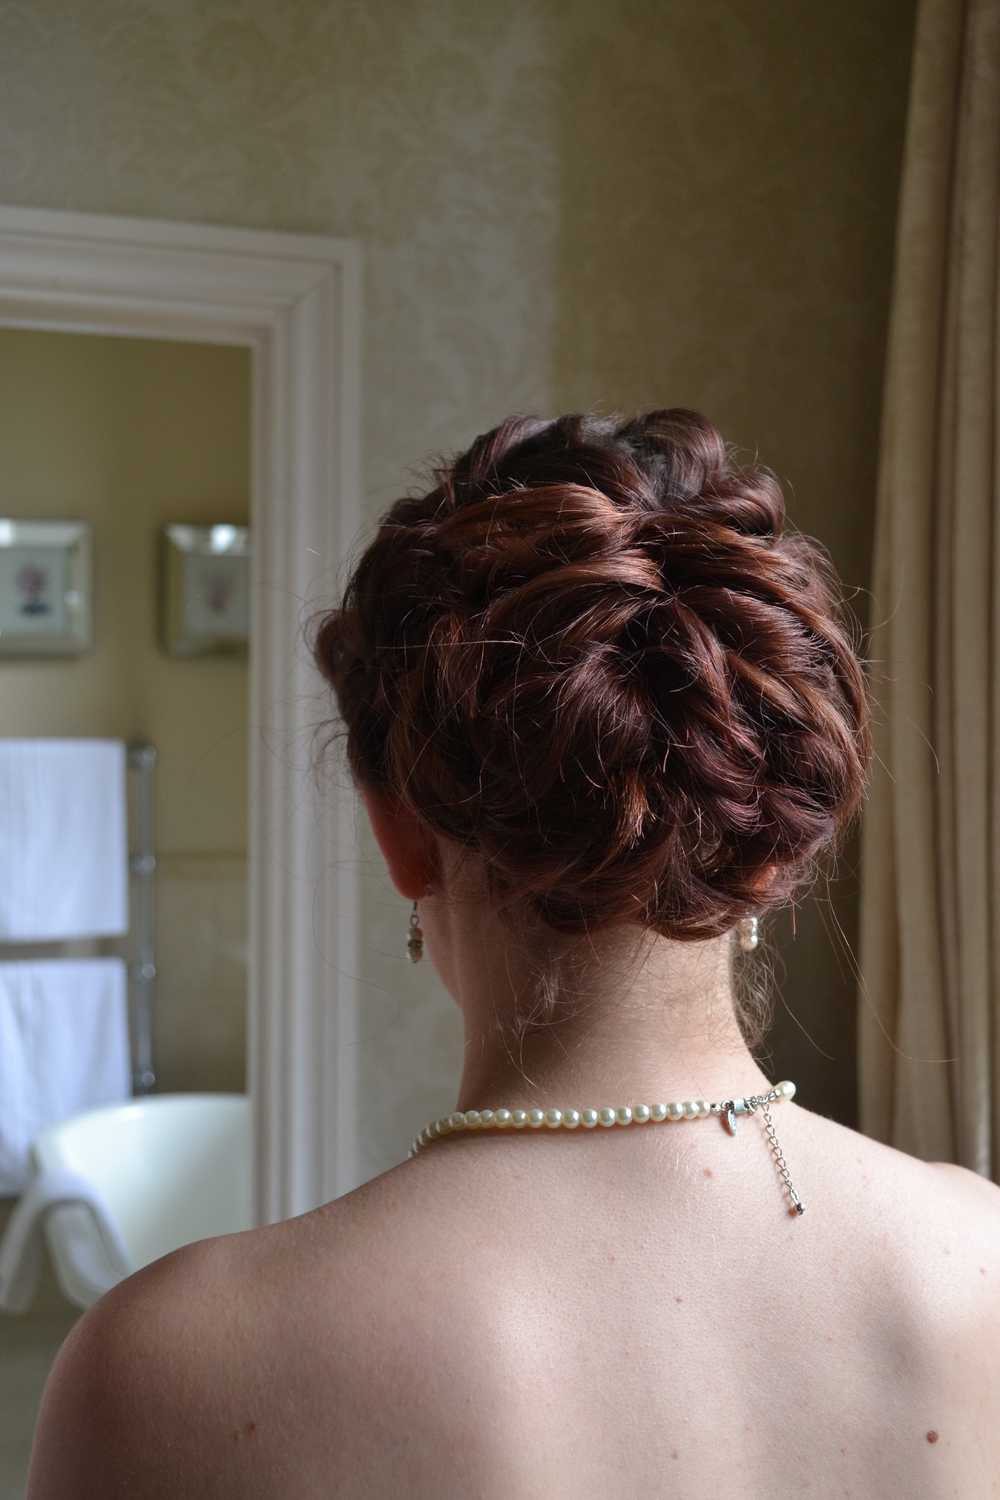 Unstructured bridesmaids hair